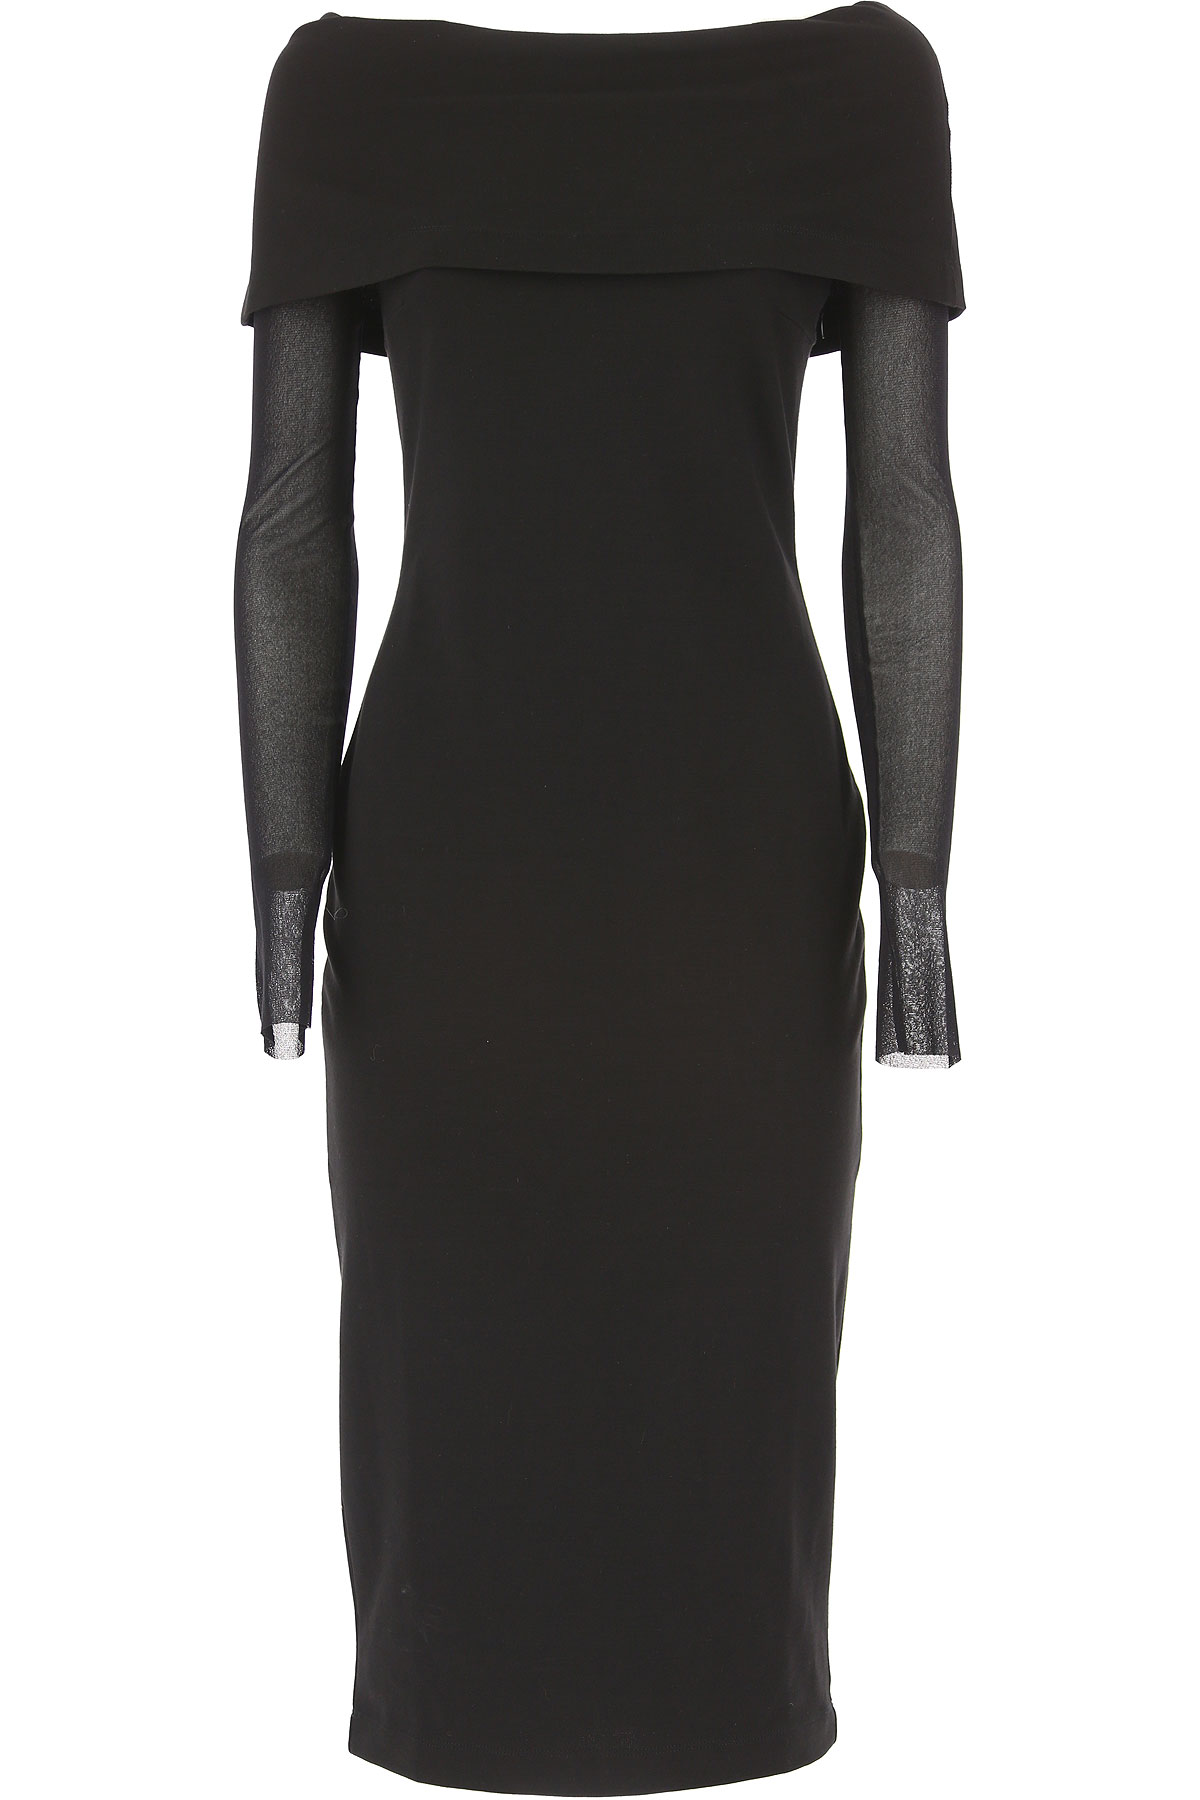 Image of Fuzzi Dress for Women, Evening Cocktail Party On Sale, Black, Viscose, 2017, 10 6